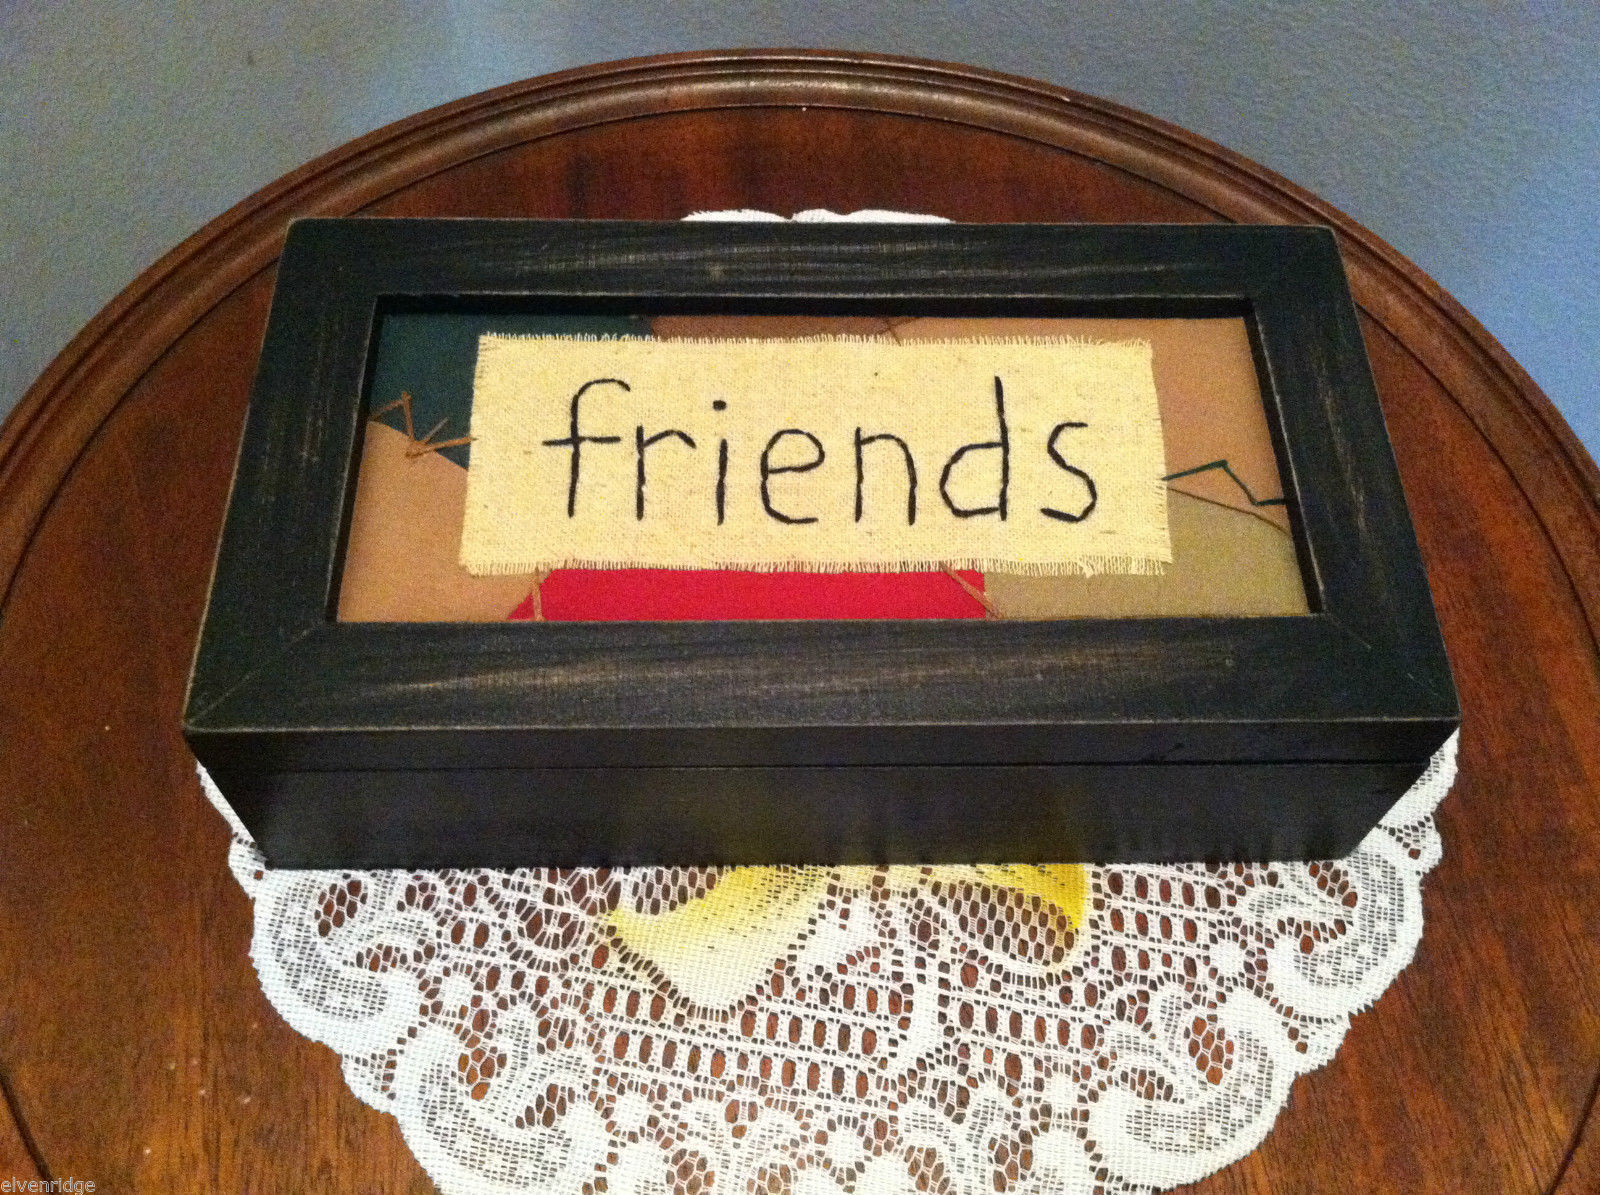 """Friends"" Hand Stitched into Quilted Lid of Black Wooden Box"